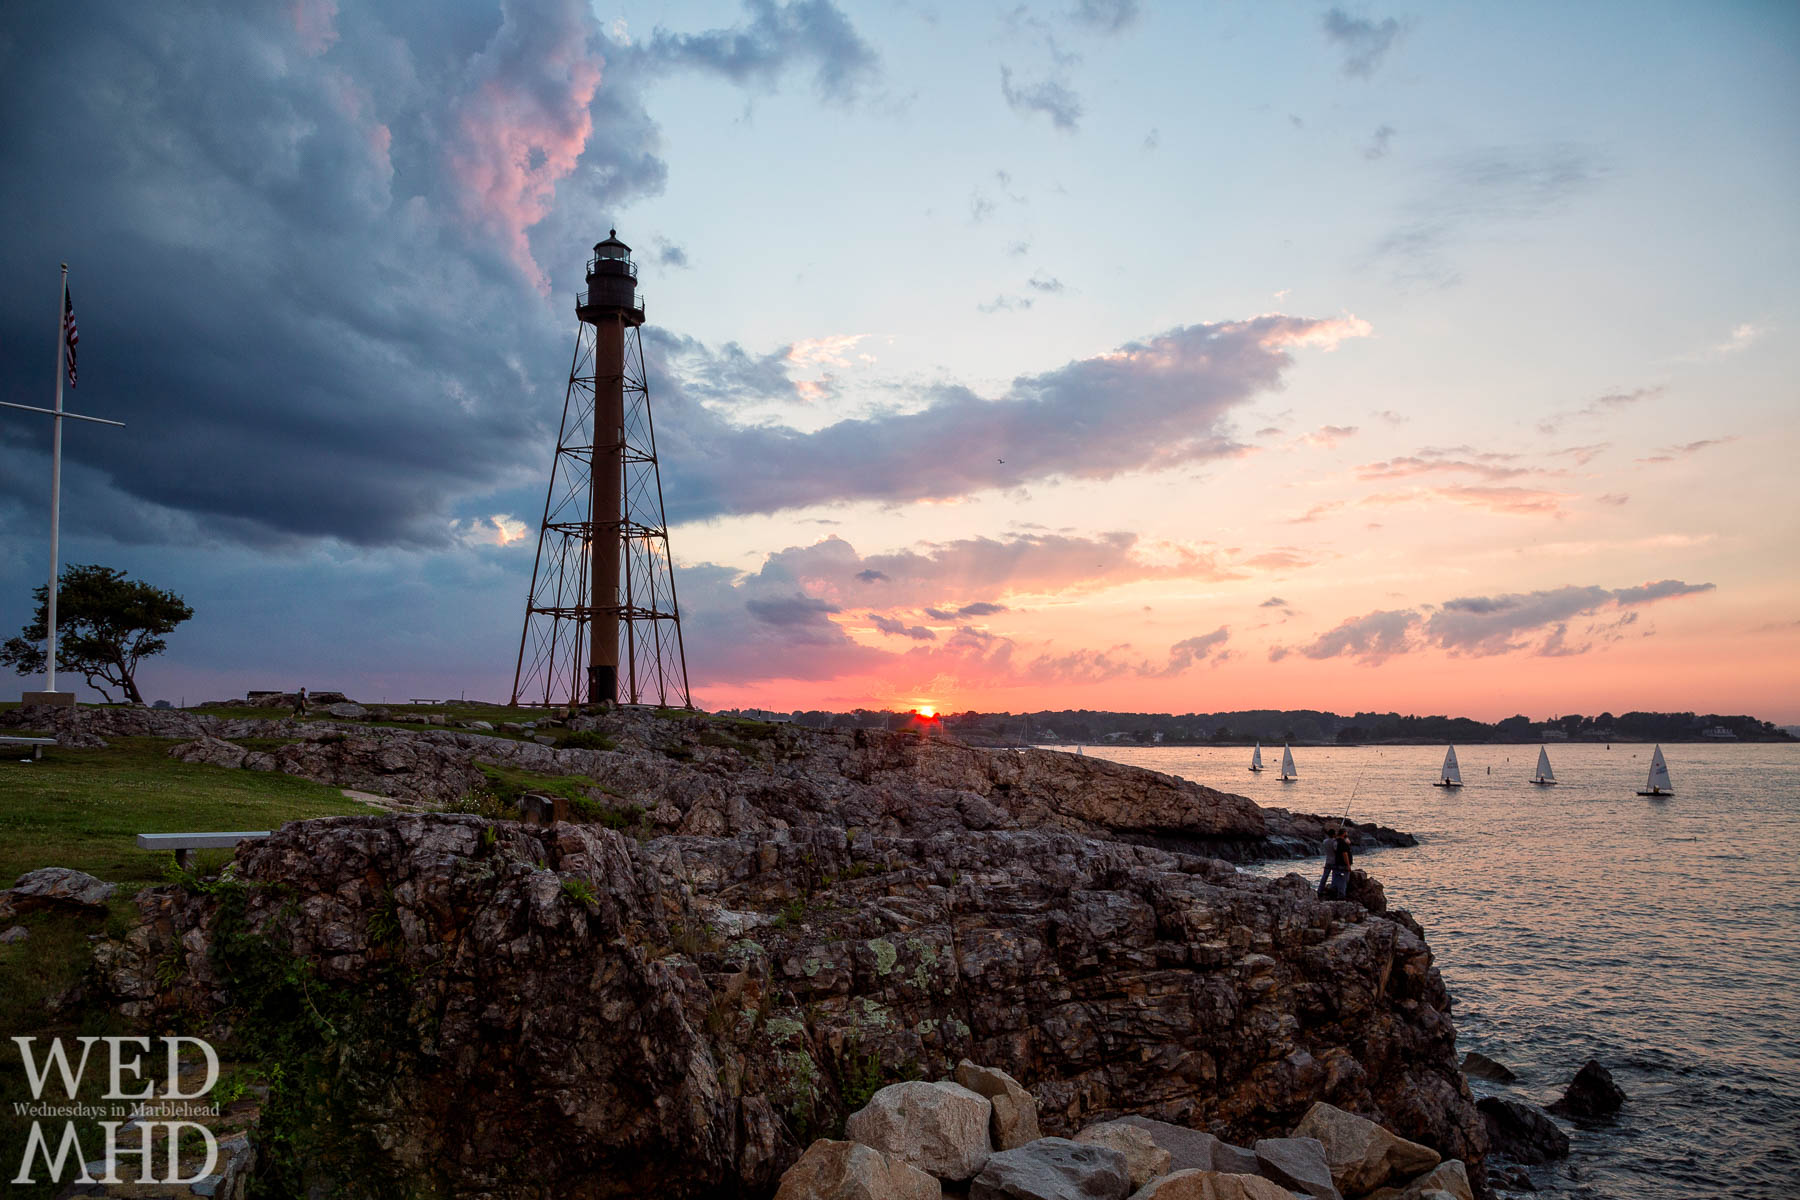 Sunset behind the lighthouse, fishermen on the rocks and boats in the harbor paint a perfect picture of summer nights in Marblehead